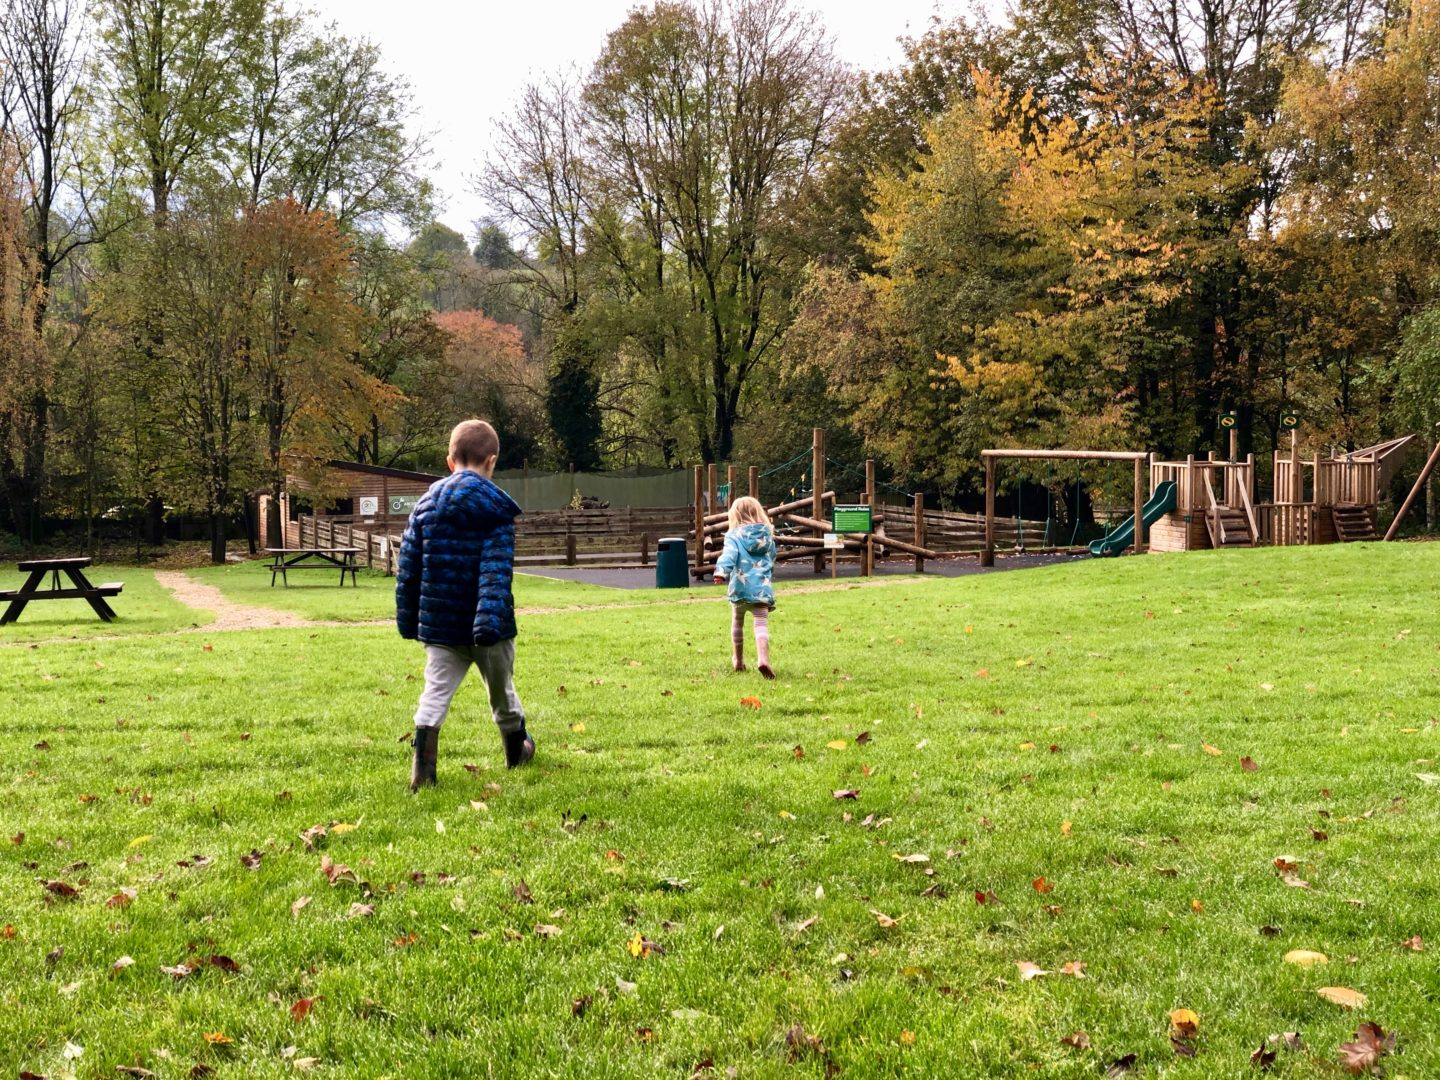 AD: Landal Sandybrook Peak District family review - a relaxing autumnal long weekend break. Kids running towards the playground at Landal Sandybrook.